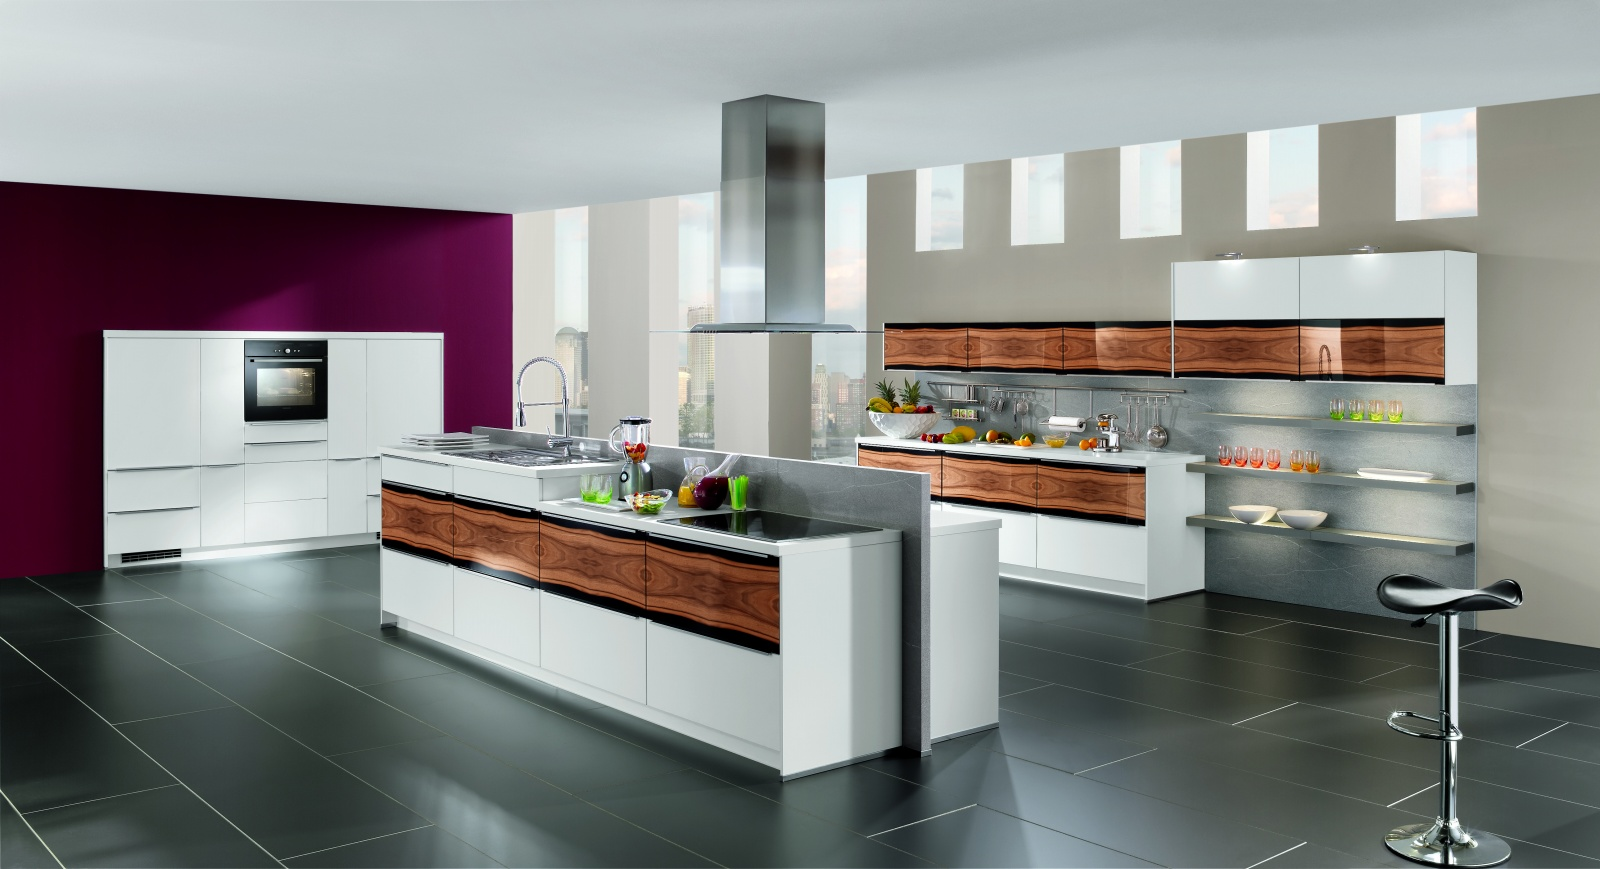 10 Light Wood Beautiful Contemporary Nobilia Kitchen Designs : nobilia kitchen design 9 from www.faburous.com size 1600 x 869 jpeg 295kB